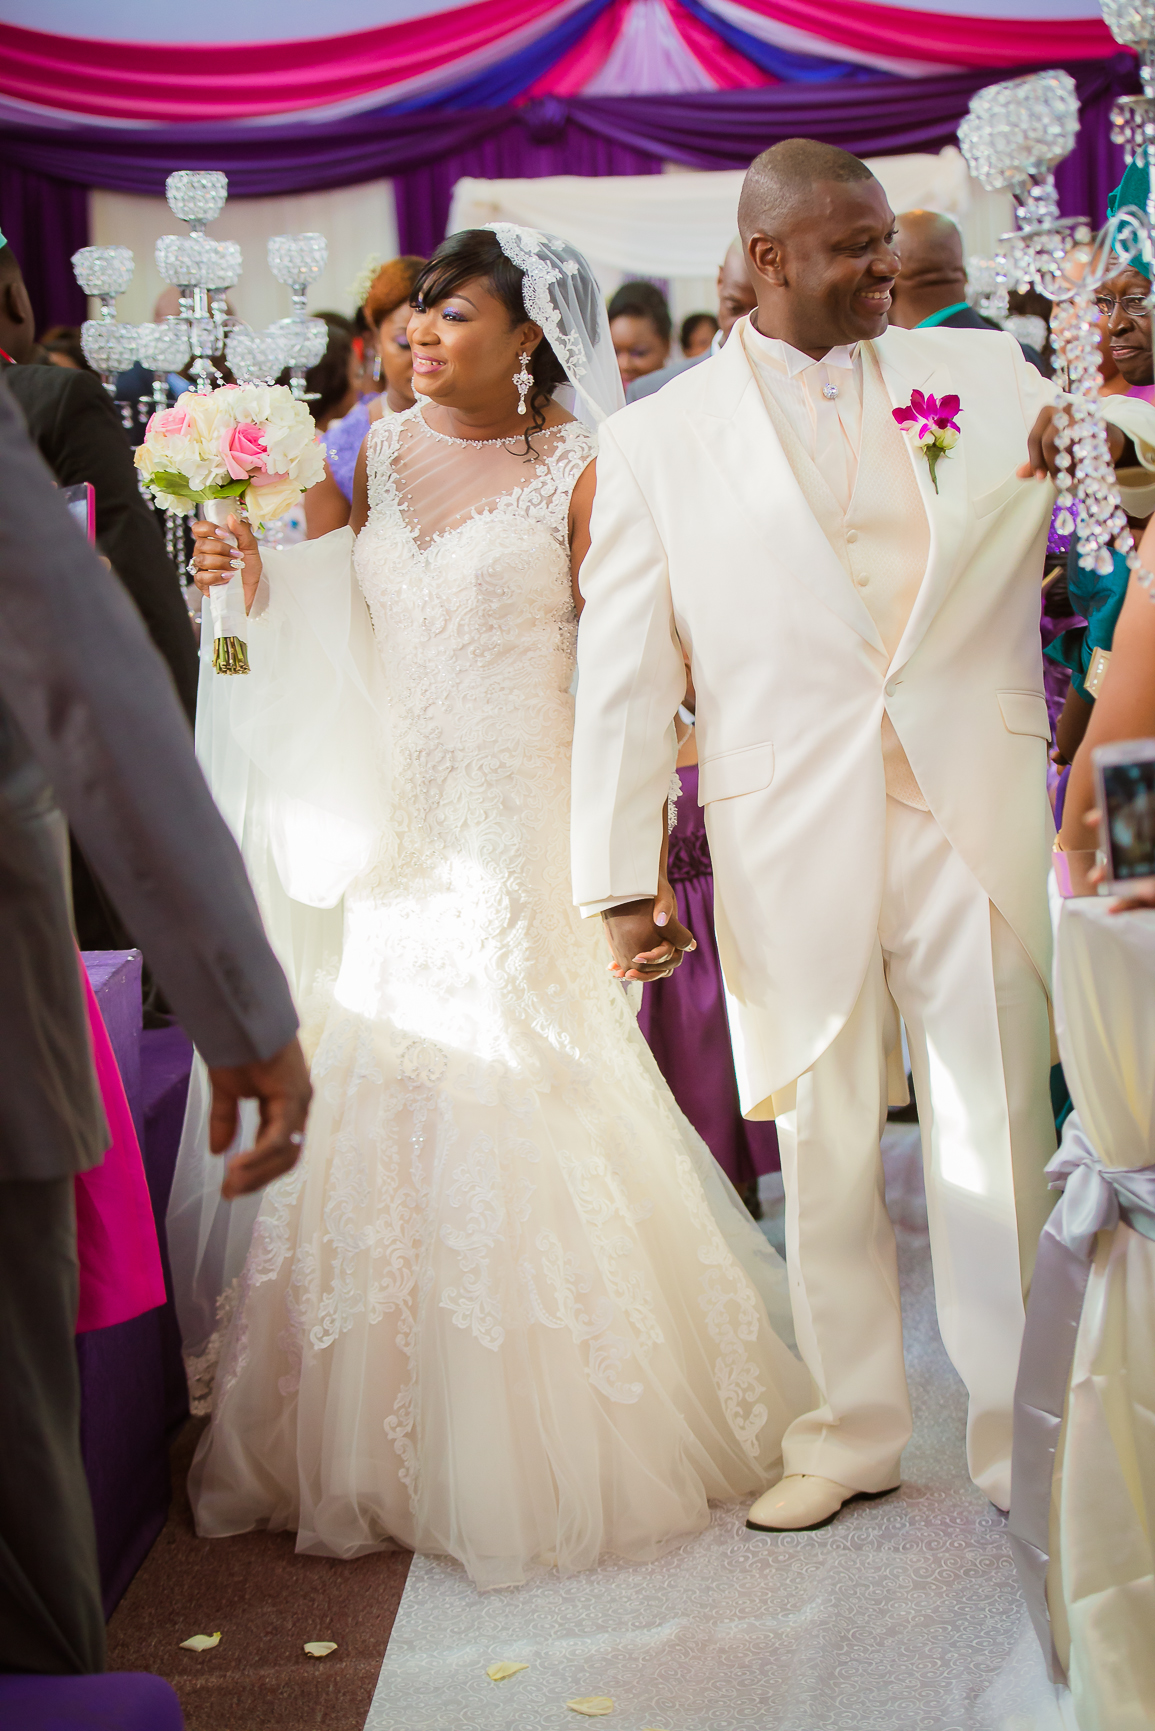 Bahamas Wedding